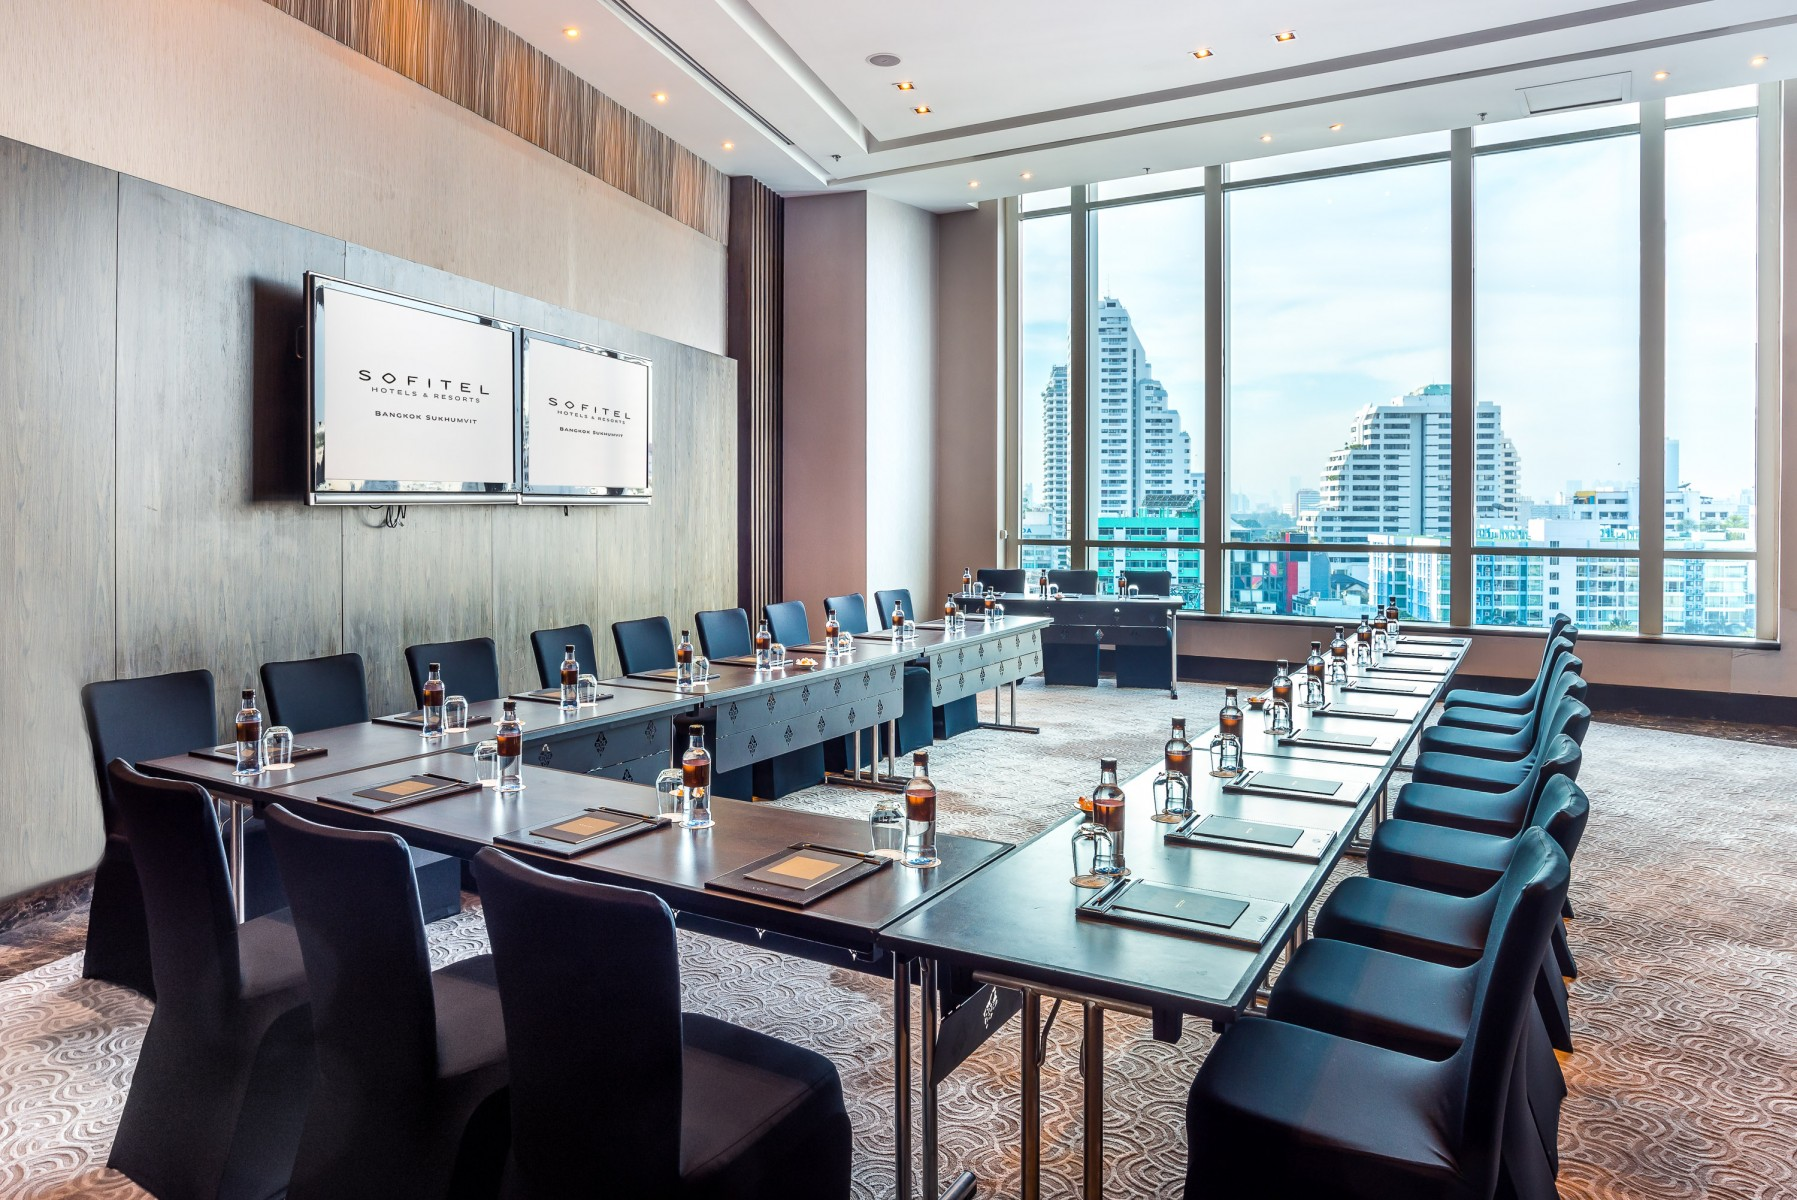 5 star meetings & event venue in bangkok